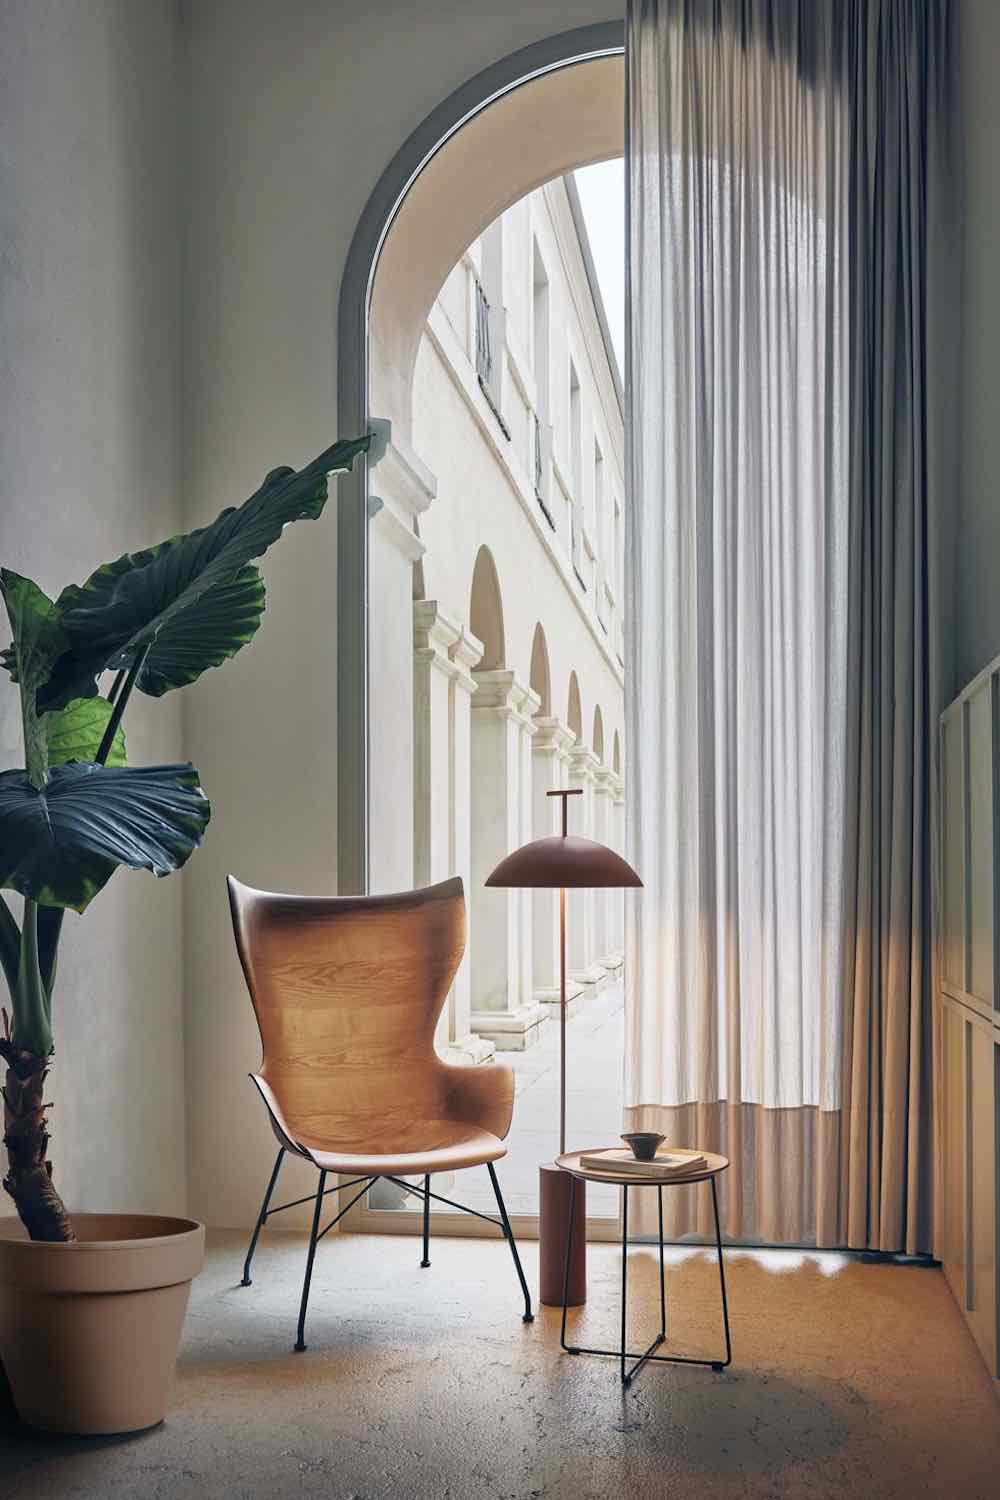 GEEN-A by Ferruccio Lavianofor Kartell - Photo by Sara Magni, ©Kartell.